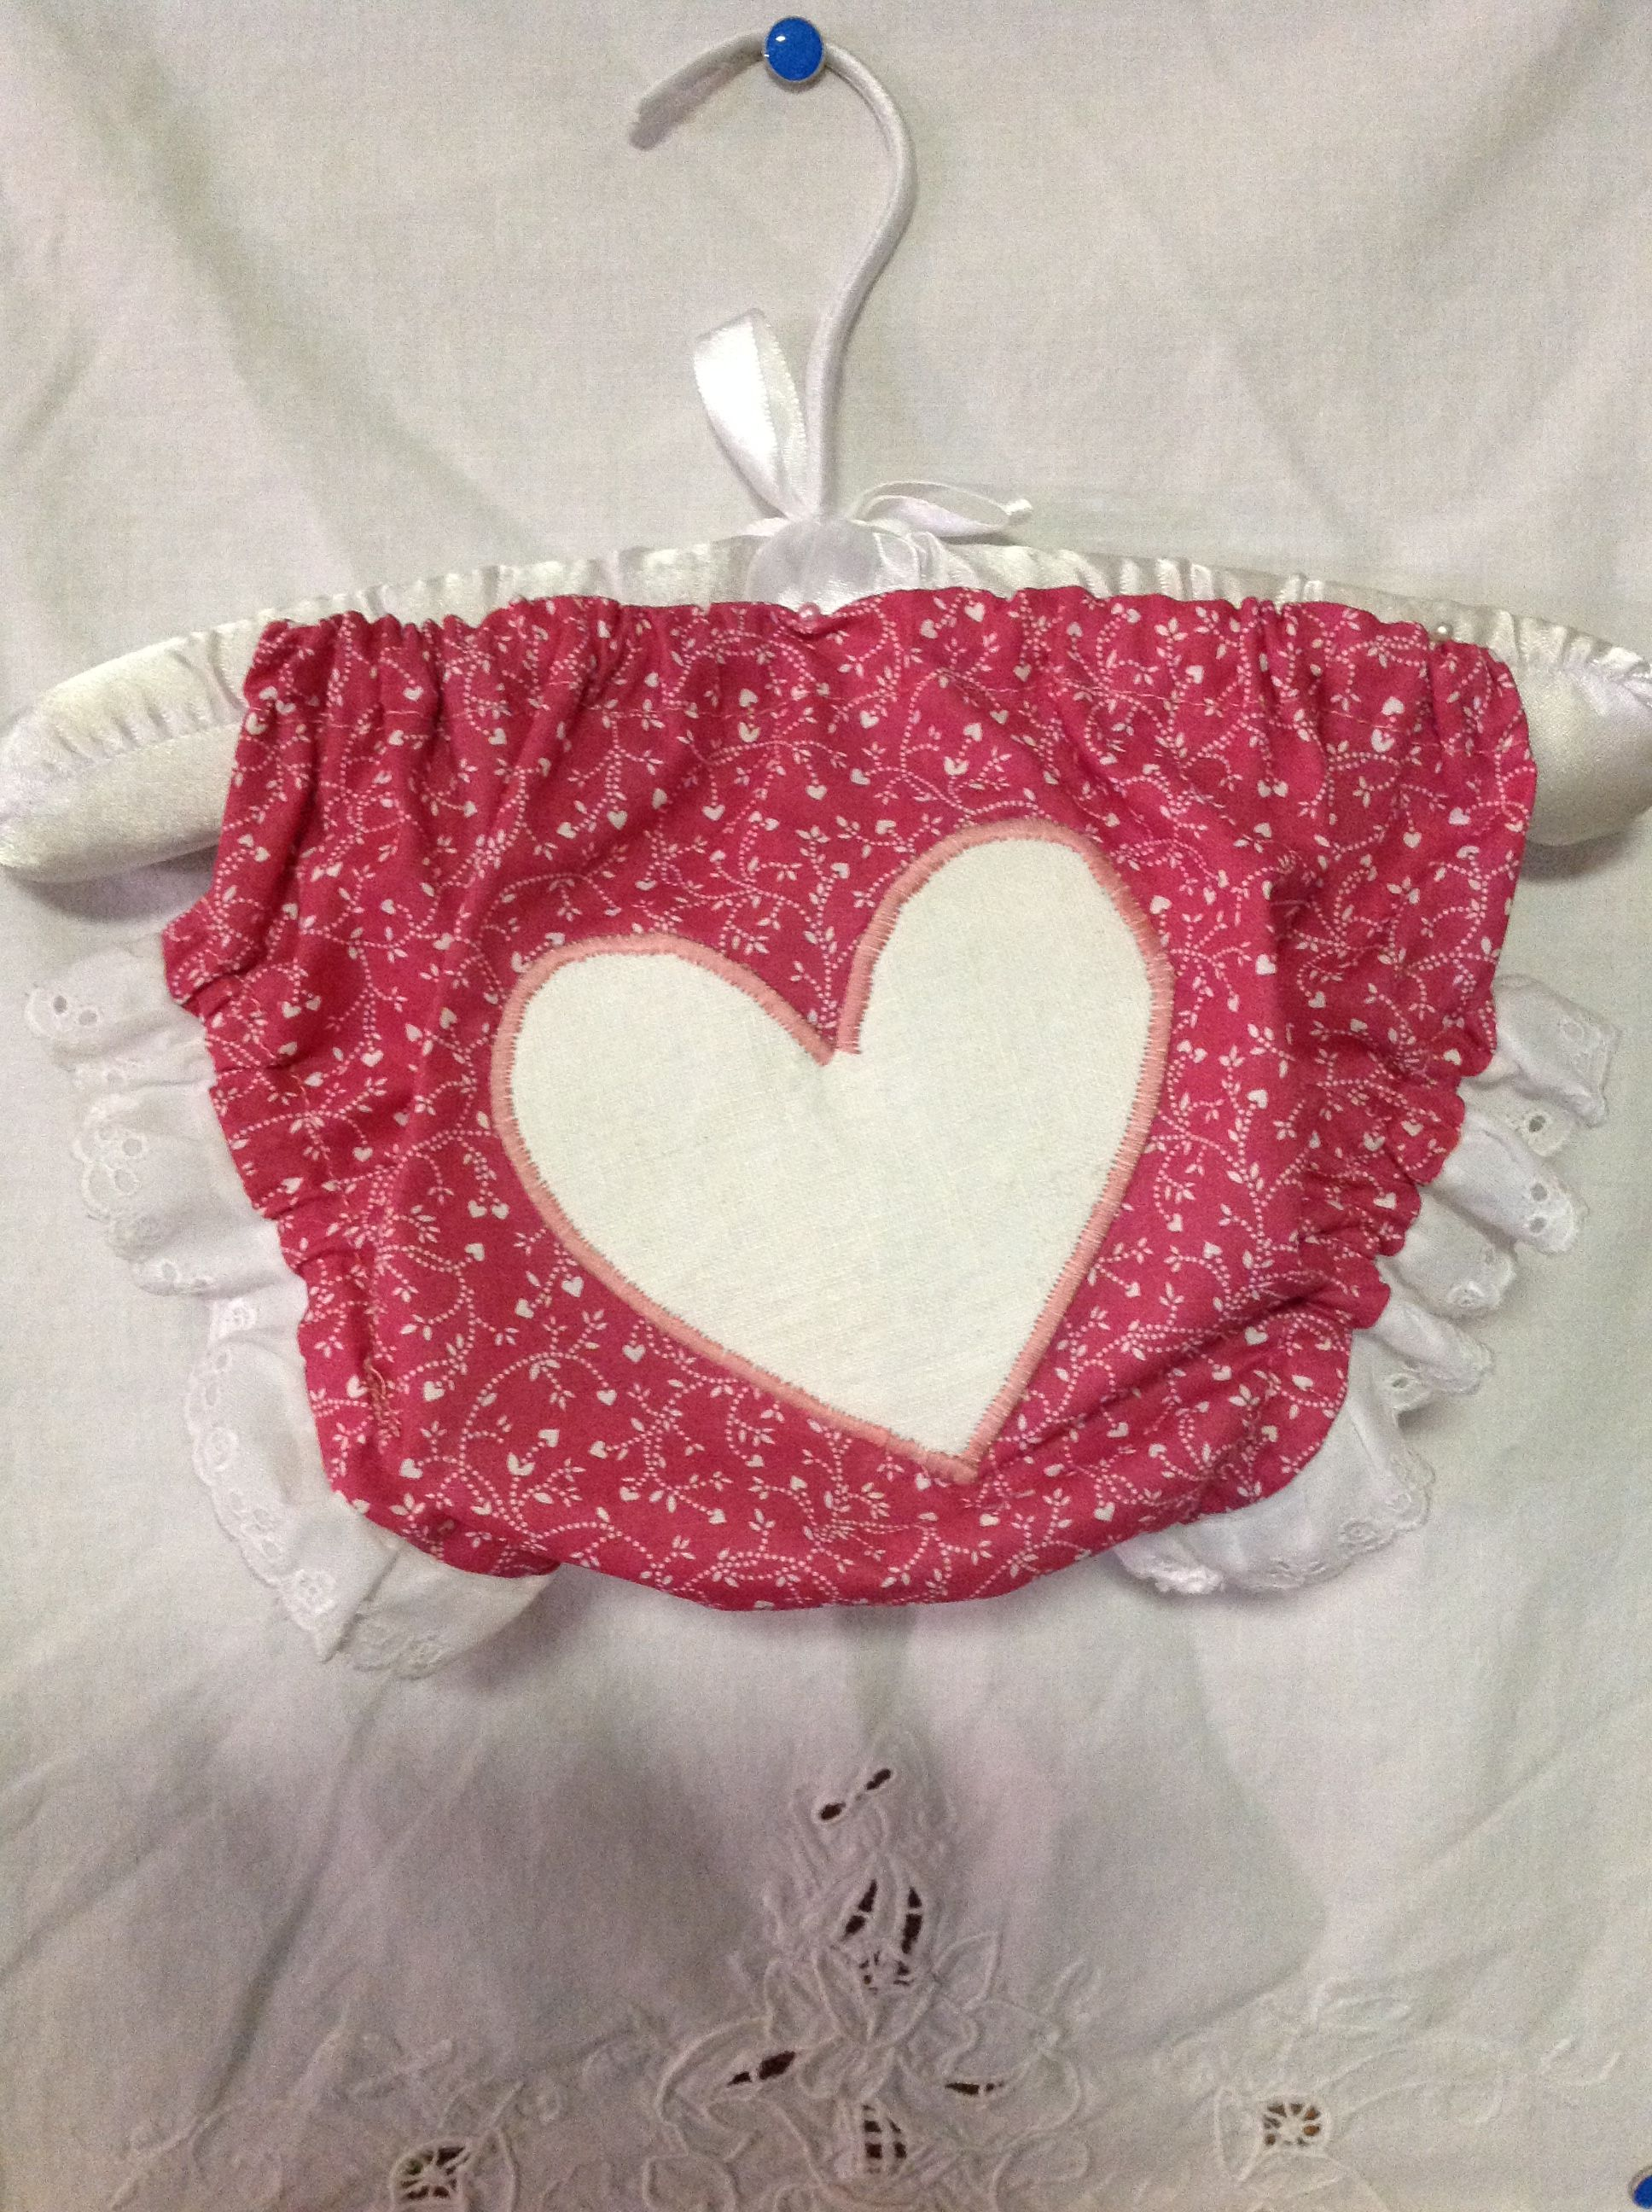 Hearts Aflutter Diaper Cover - 3-6mos. Made by me for my Etsy Shop.